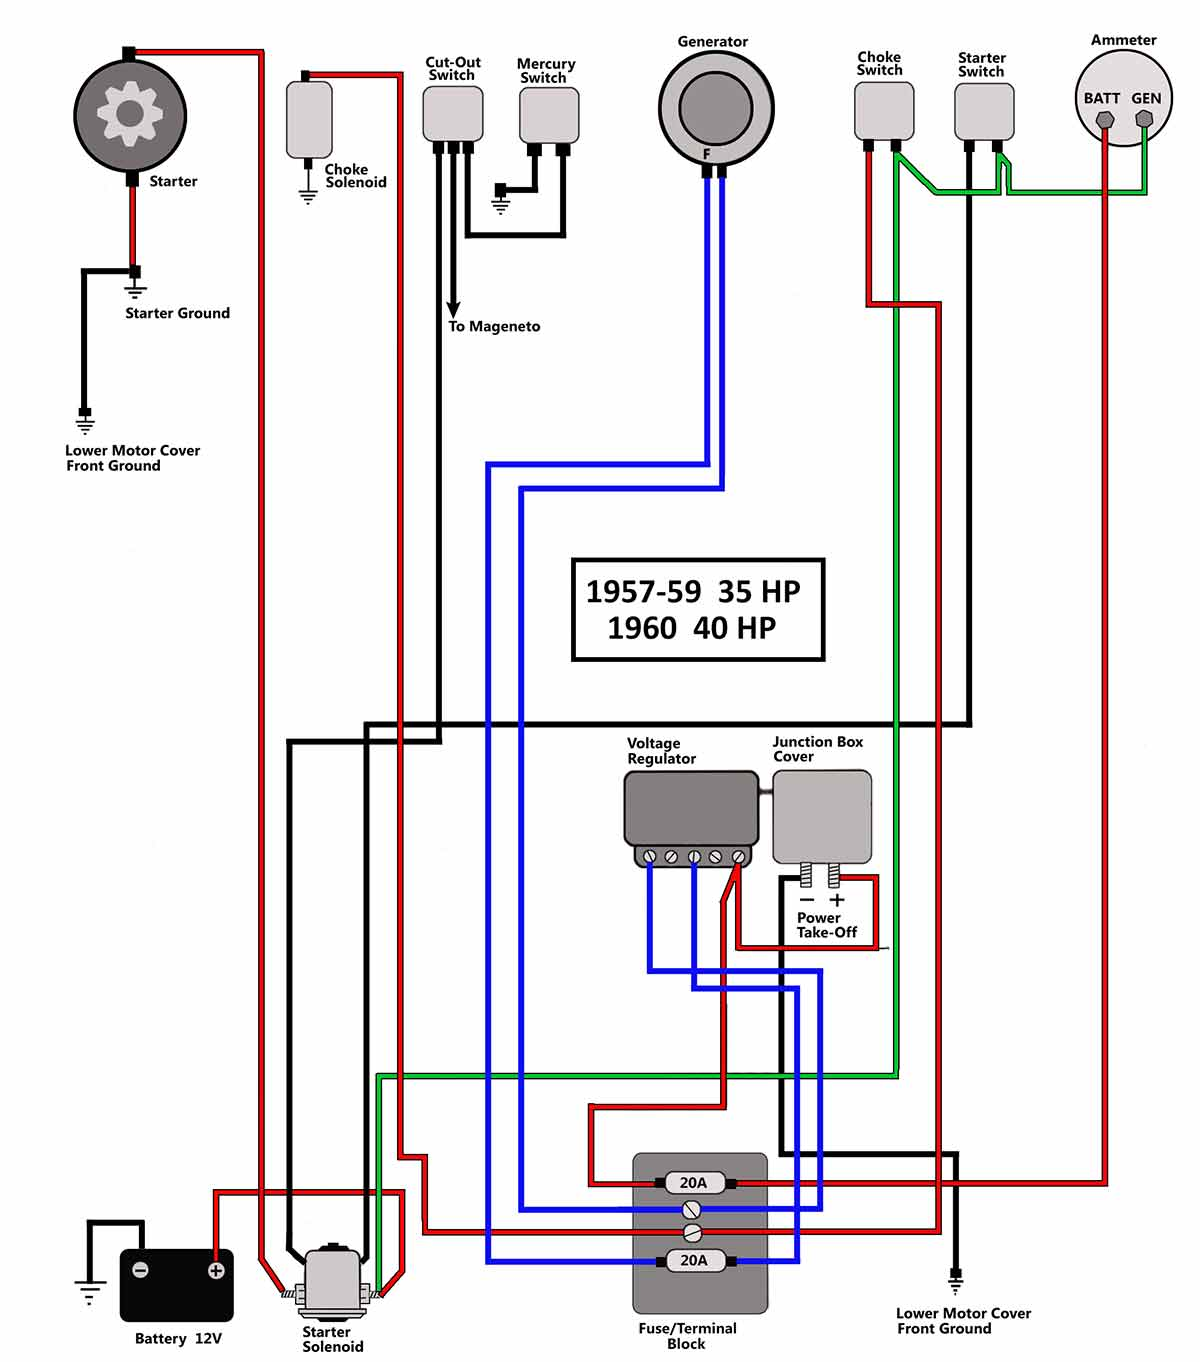 hight resolution of evinrude outboard motor diagrams wiring diagram paperwiring diagram for 1989 evinrude 100 hp 14